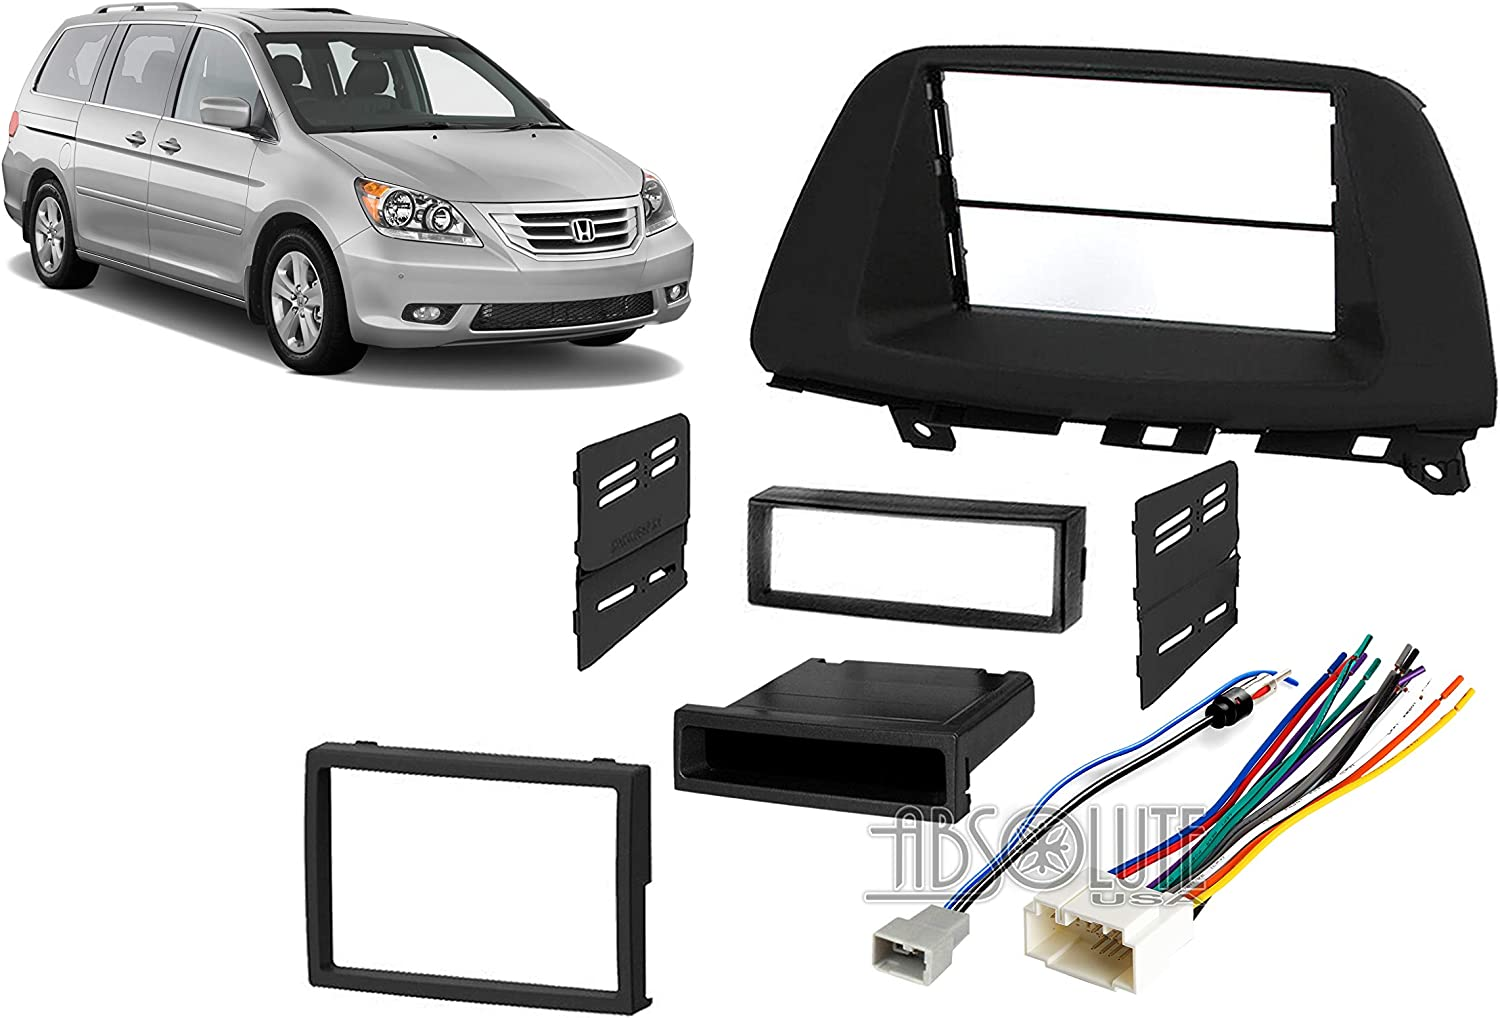 Absolute USA ABS99-7869 Fits Honda Odyssey 2005-2010 Multi DIN Stereo Harness Radio Install Dash Kit Package